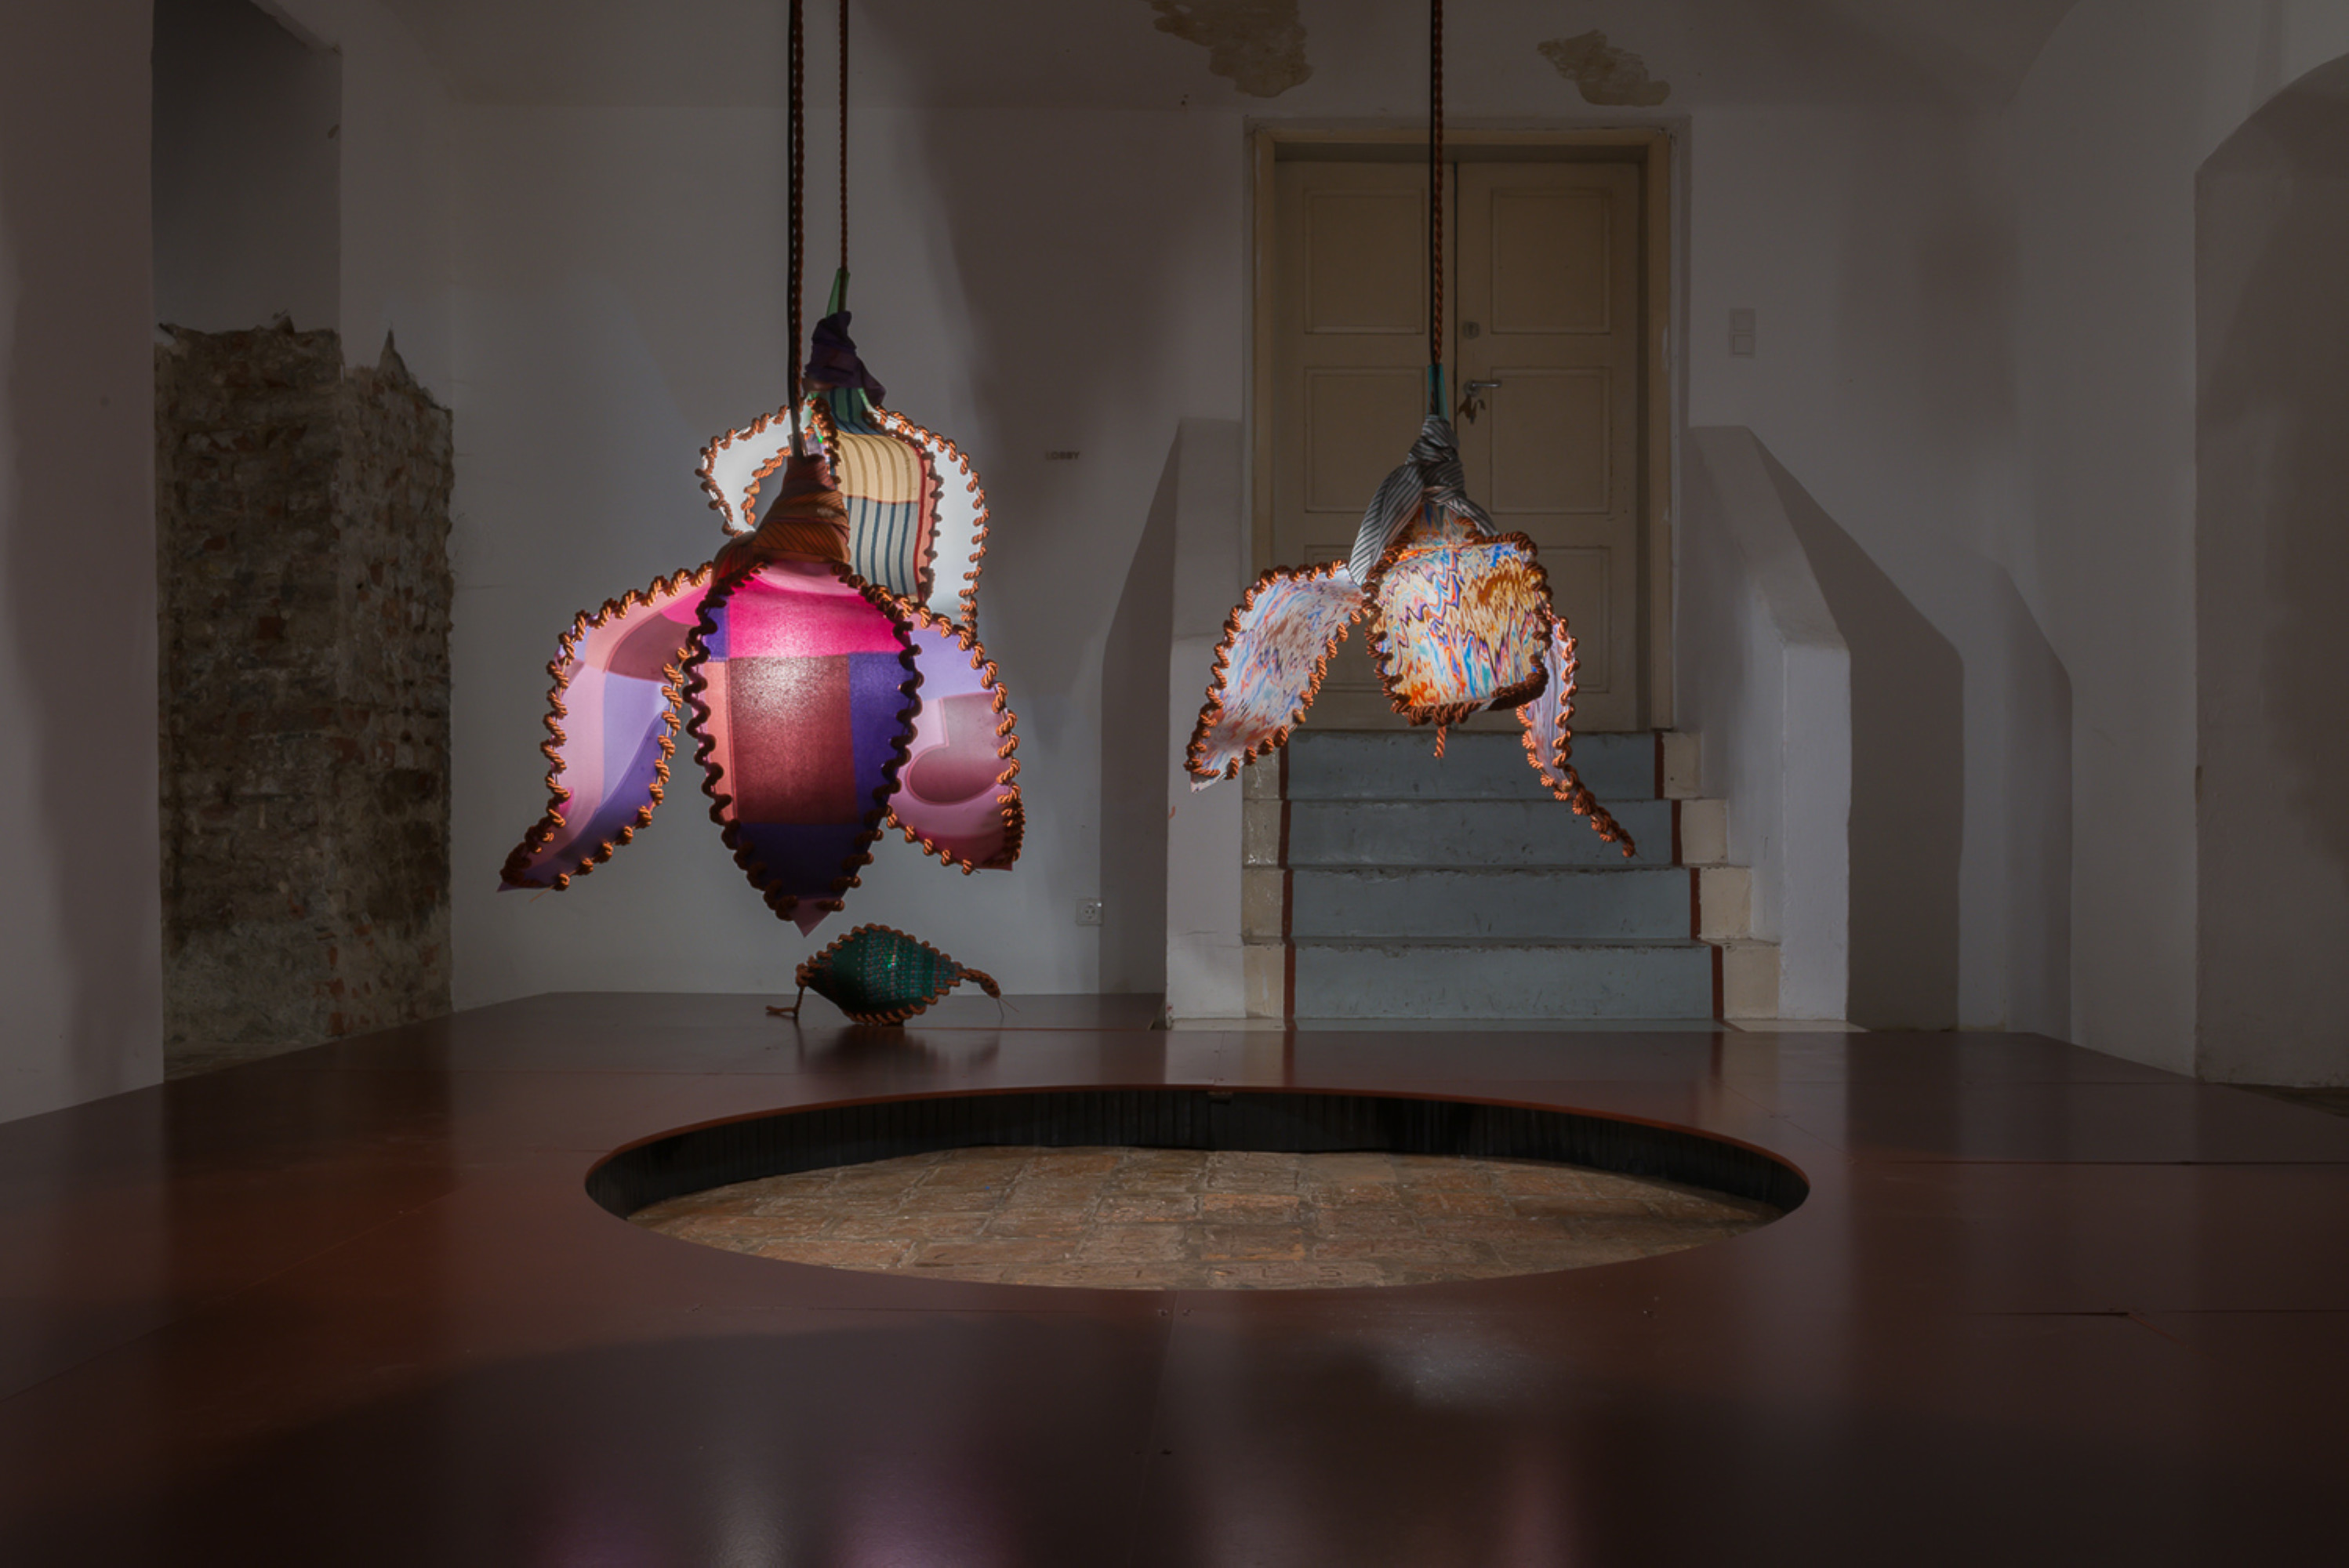 Half-lit World, Michaela Schweighofer: If you're the moon that shines, I am the sun that lights you., silk scarves, glass, robes, metal, electricity, light, 2020